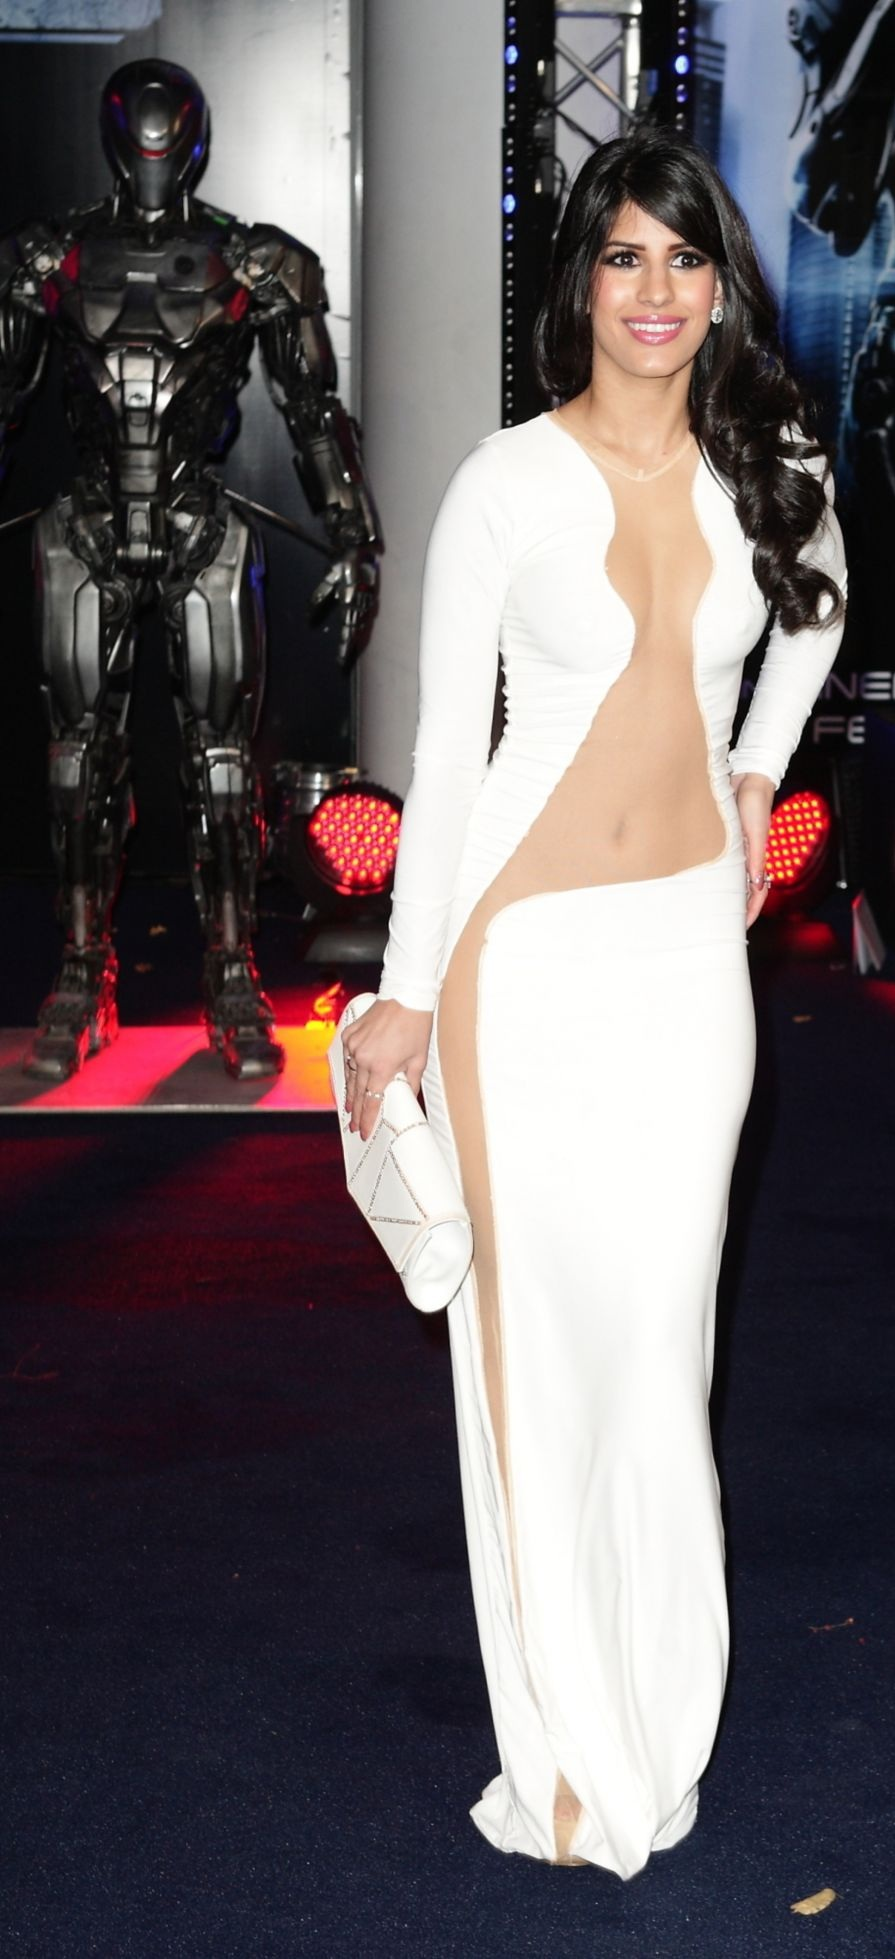 jasmin-walia-at-robocop-premiere-in-london_5.jpg - 261.37 KB